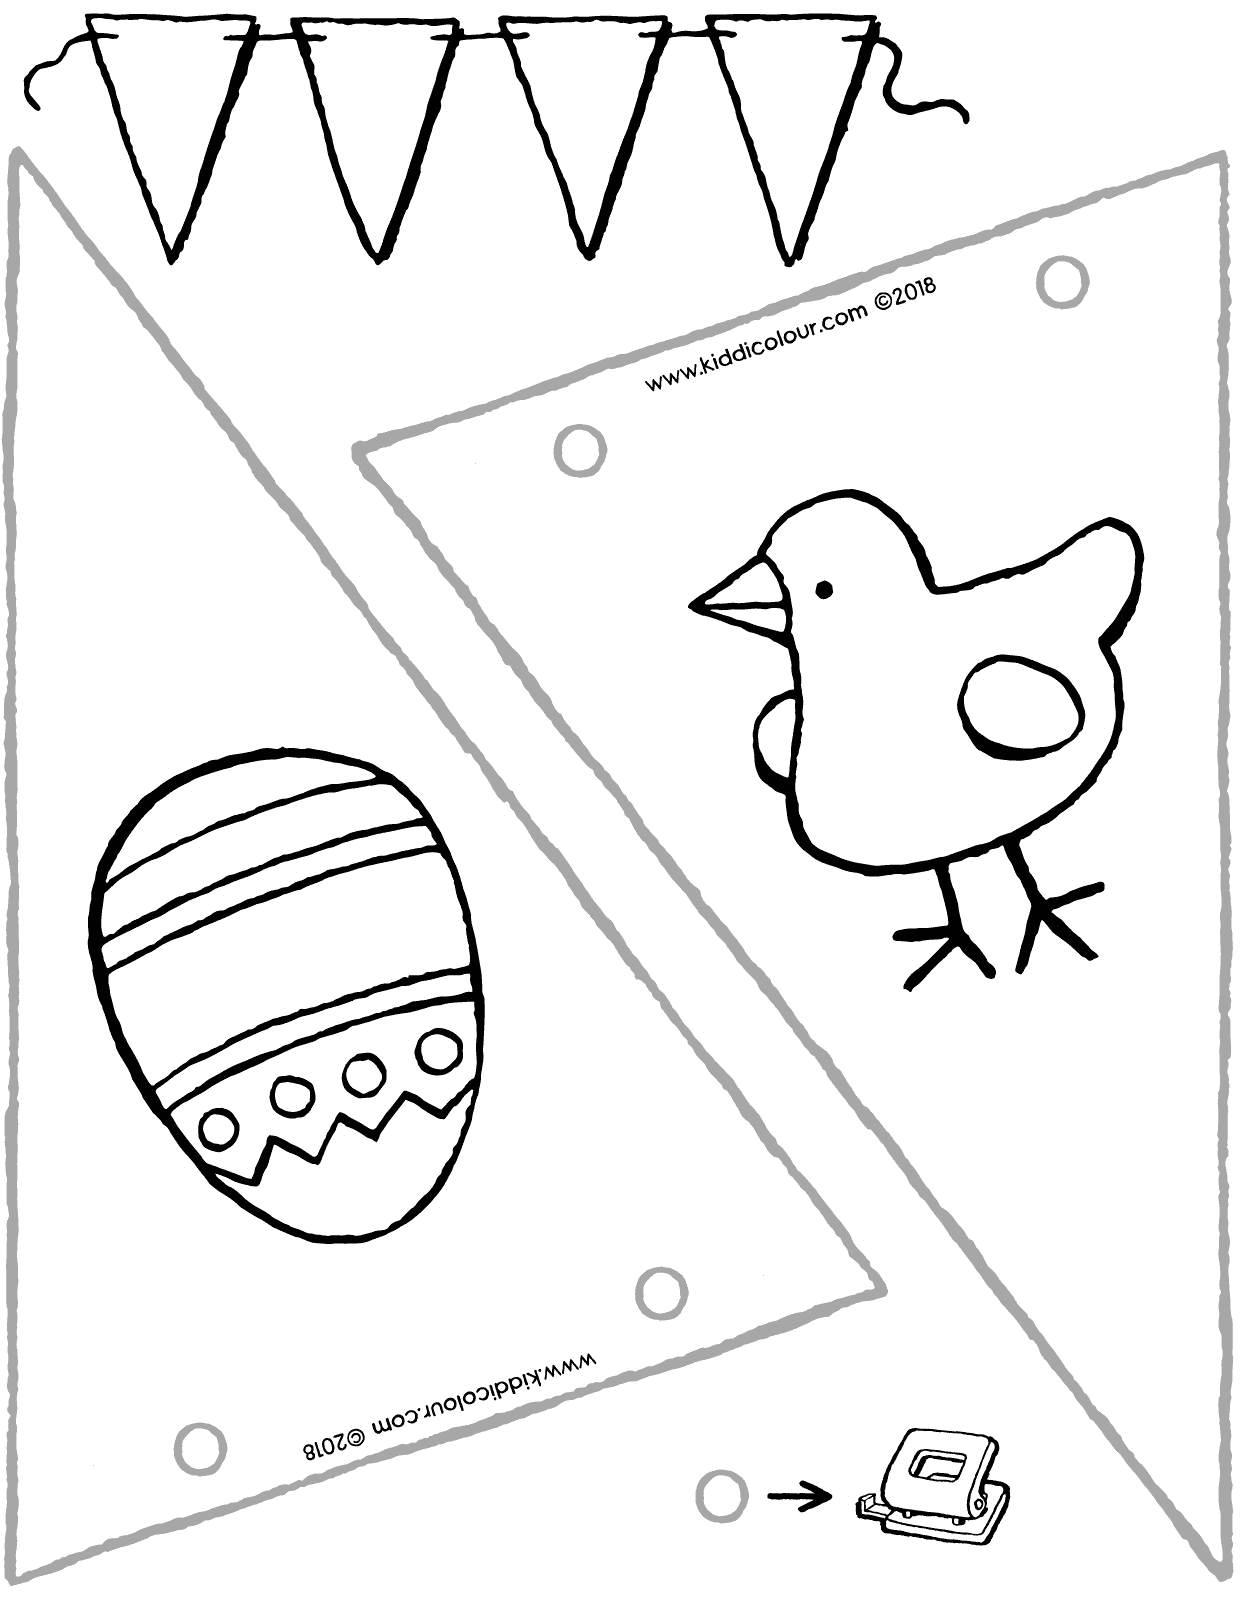 crafting an Easter bunting colouring page drawing picture 01V